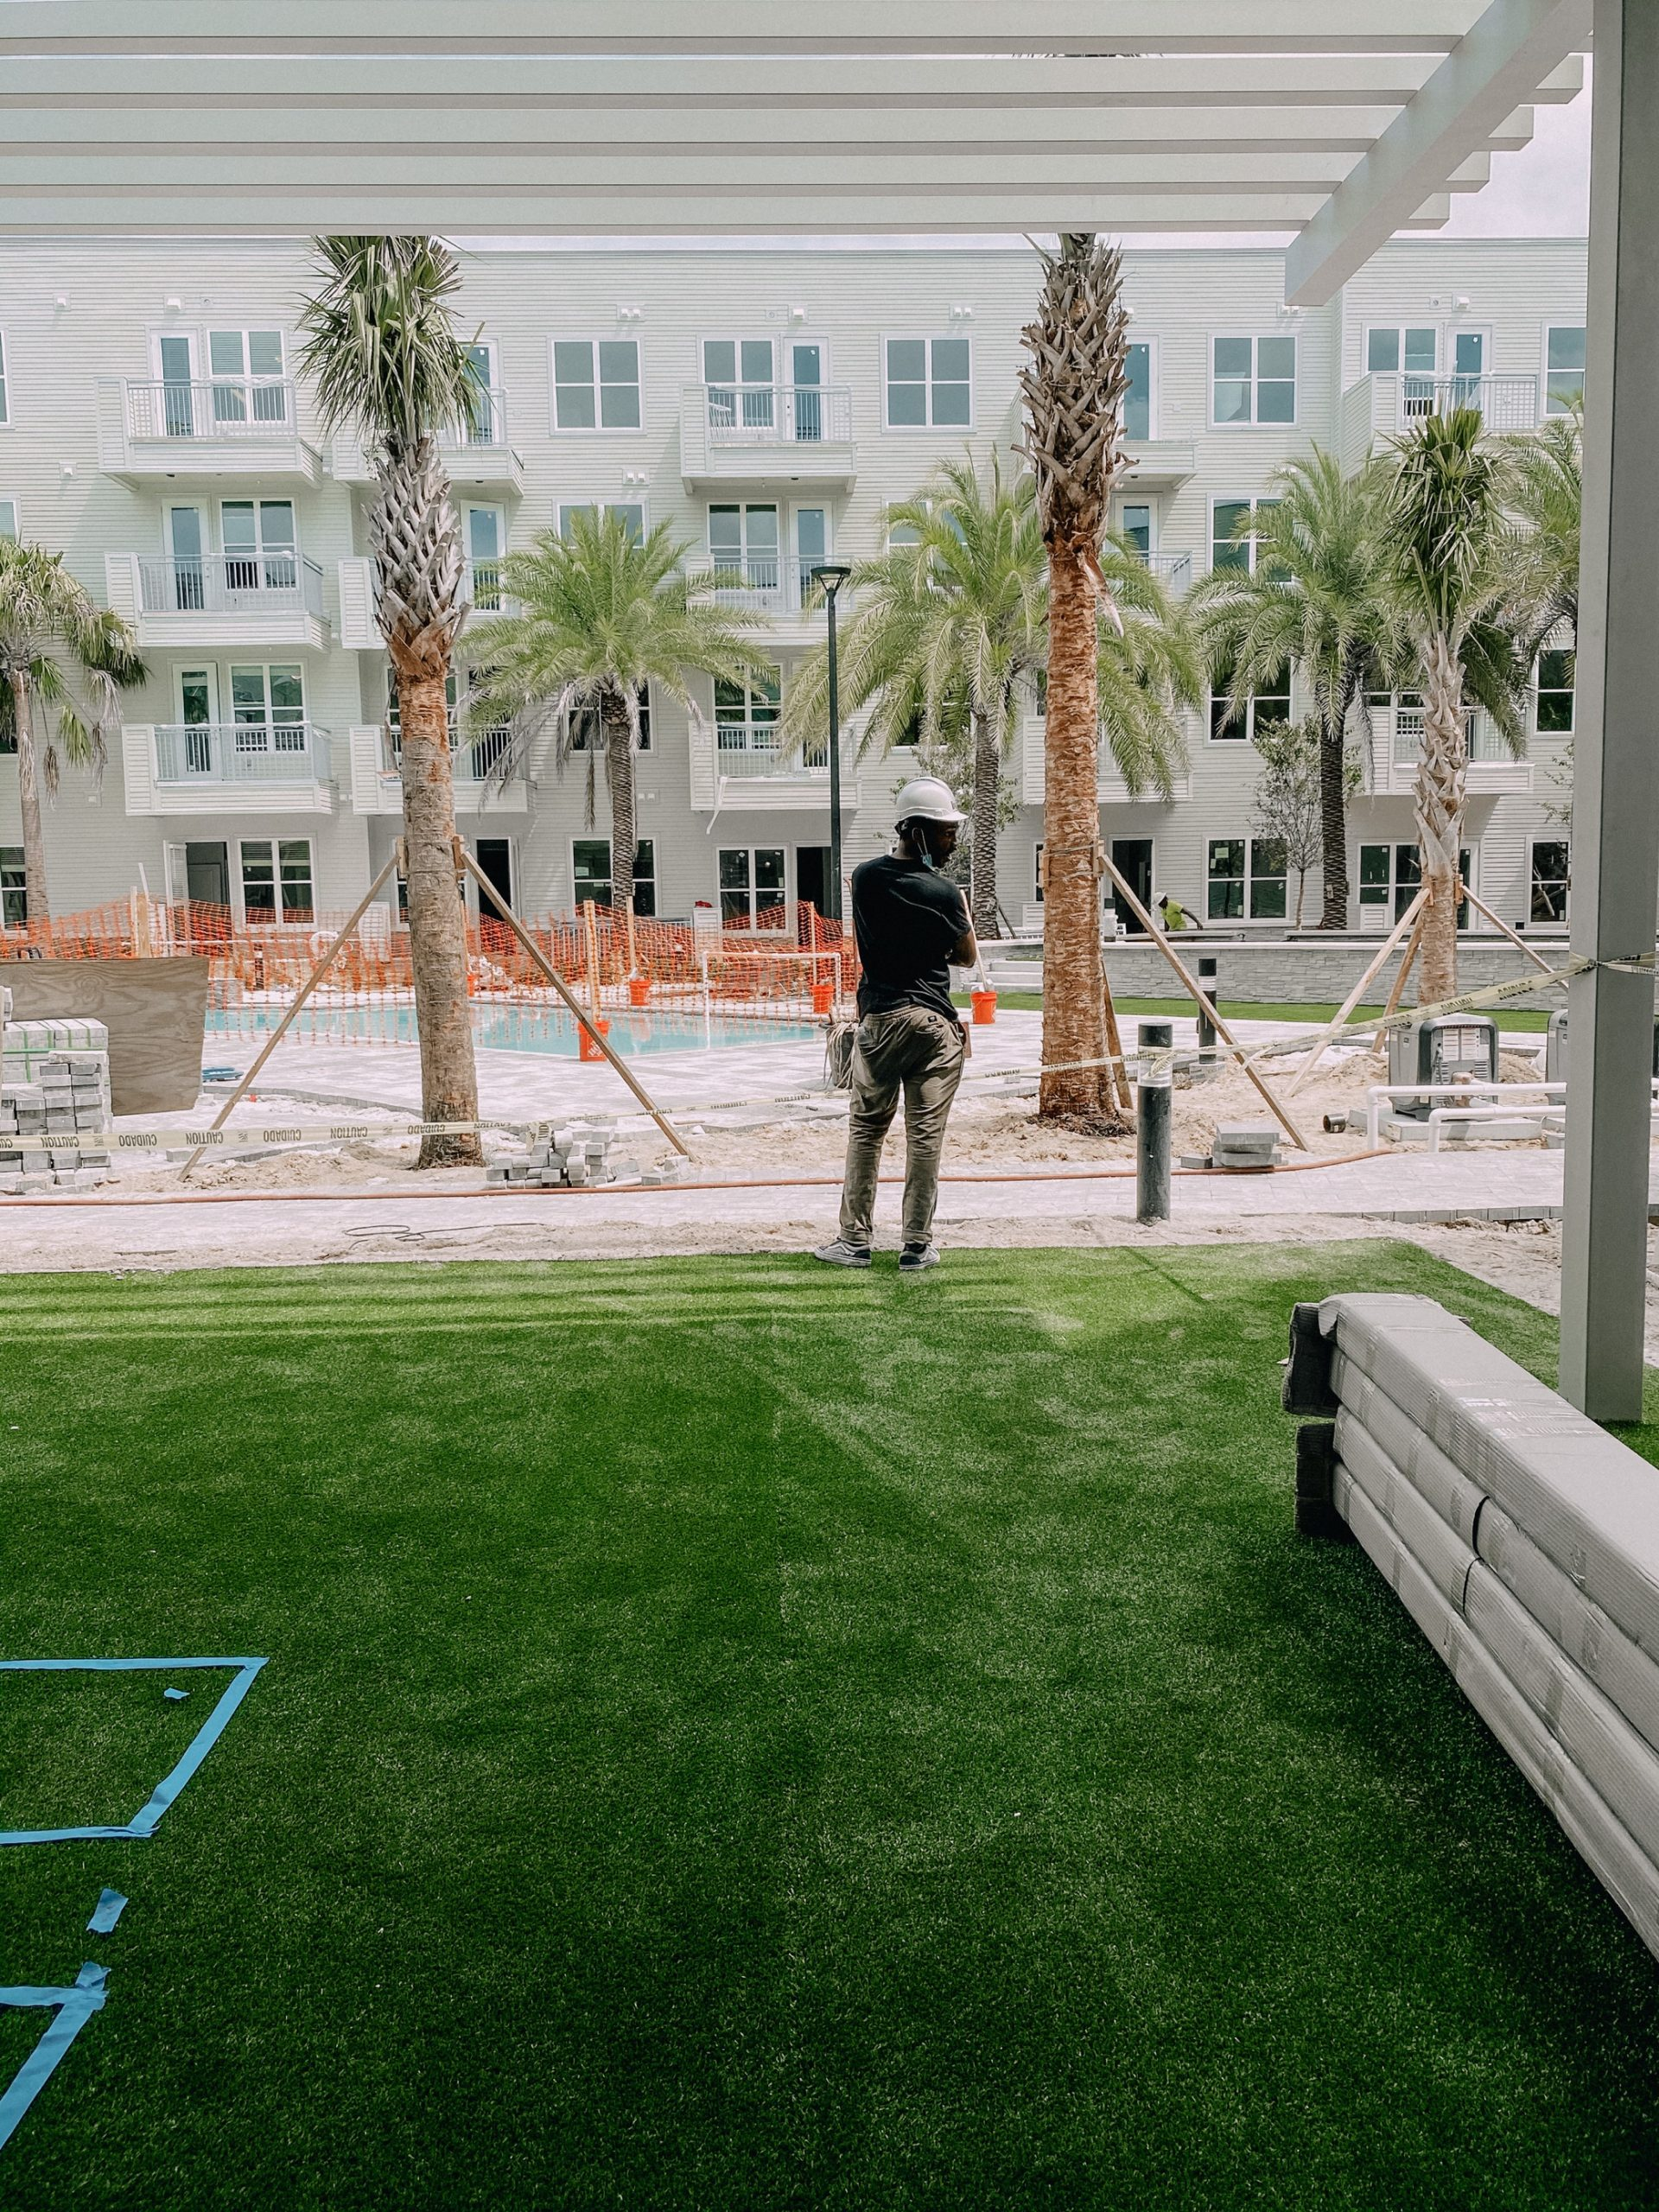 Courtyard at Liv+ Gainesville Apartments With a Construction Worker in the Background